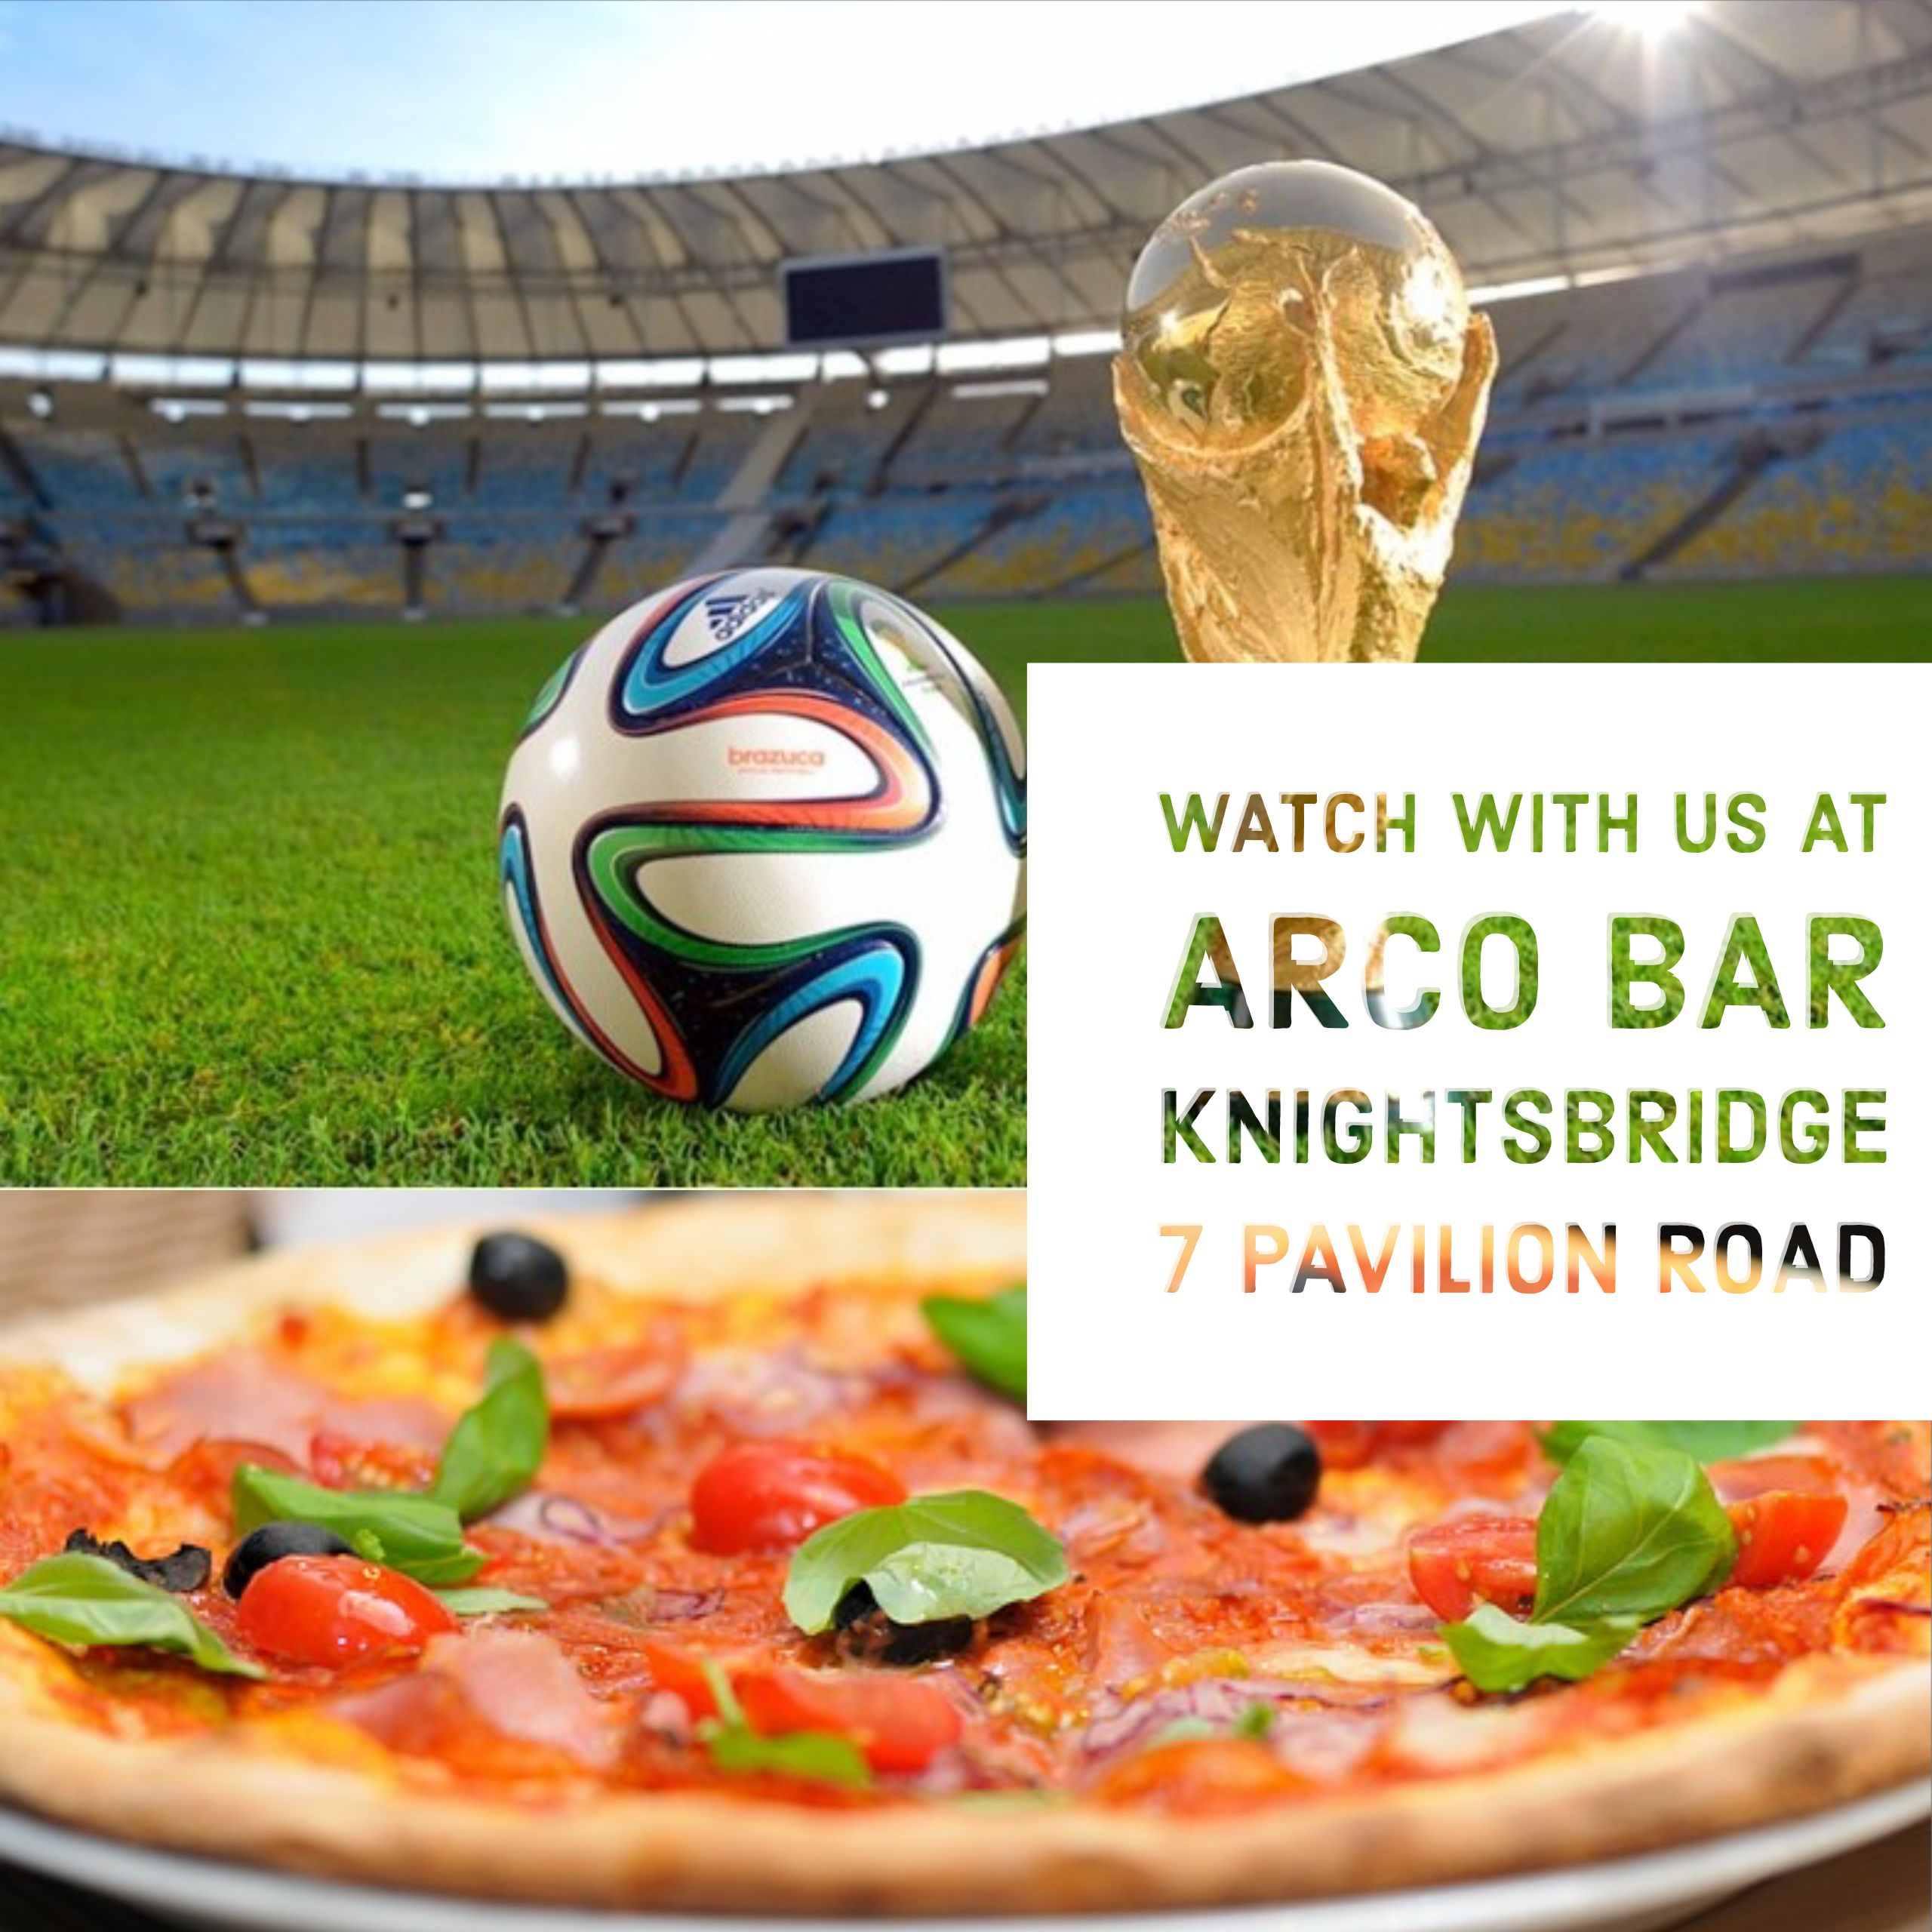 Watch FIFA WORLDCUP RUSSIA 2018 at Arco Knightsbridge with delicious ...